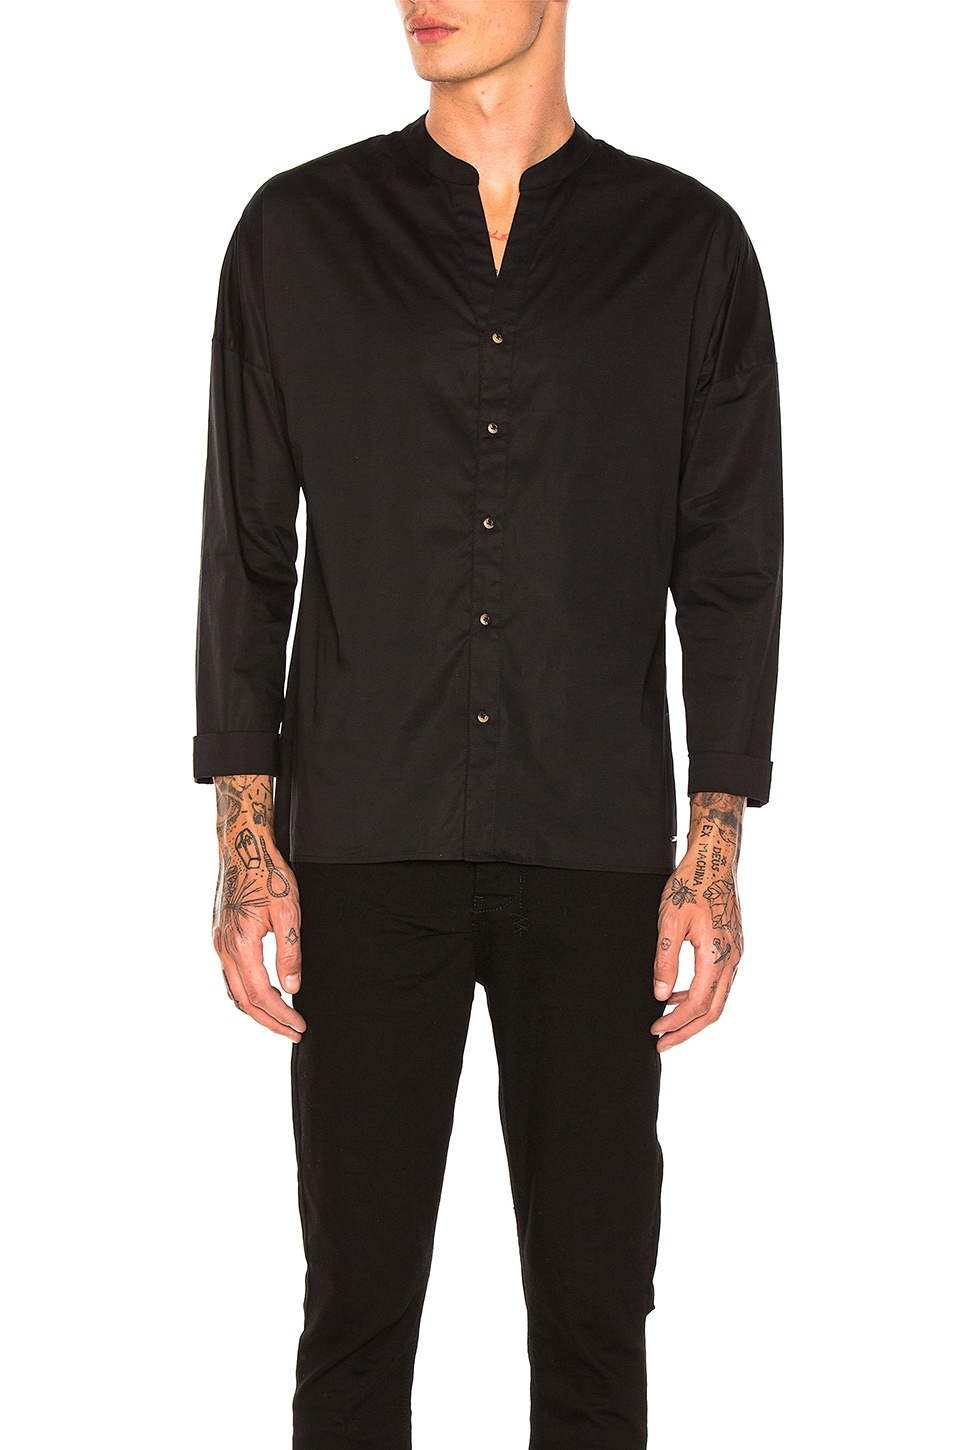 3/4 Sleeve Shirt